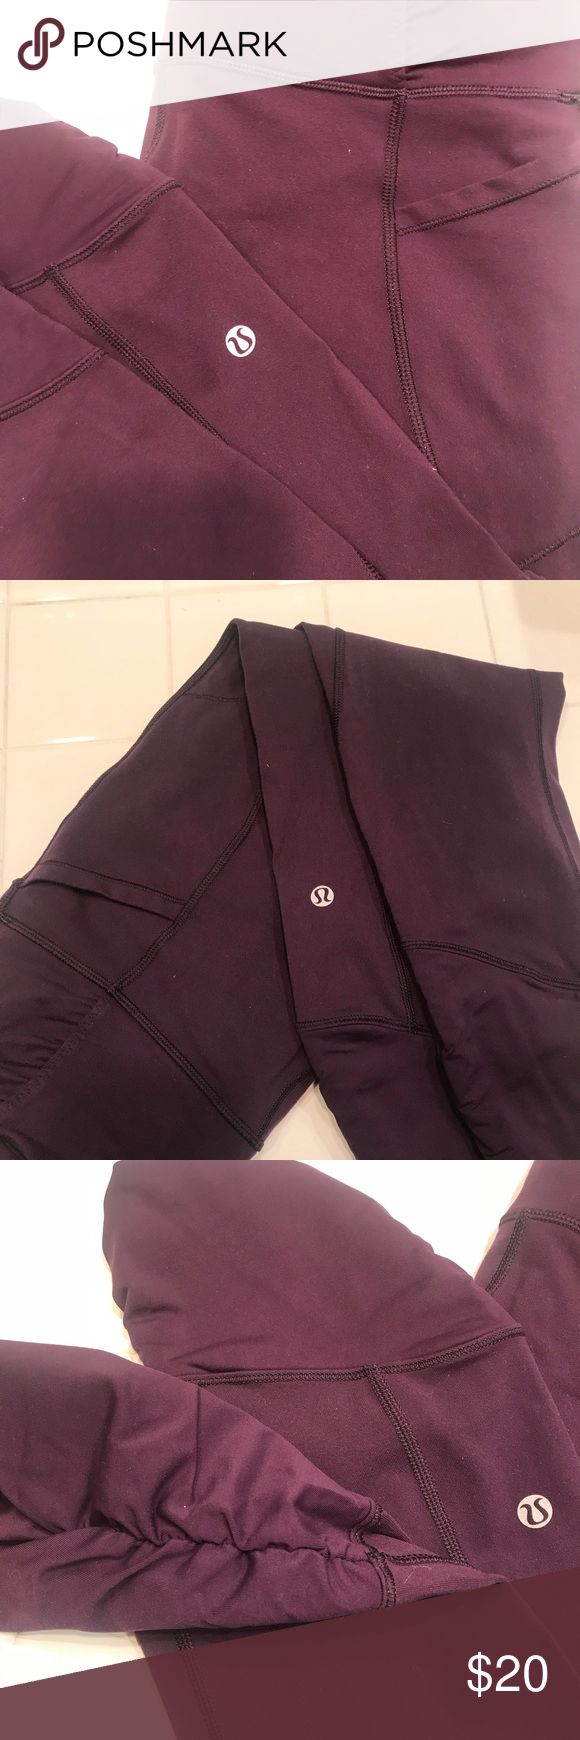 Women's lululemon athletica Purple crop pants Great material size 8 these are worn and used is a low rise waste cropped pants With detailed fabric around the bottom Pants Capris